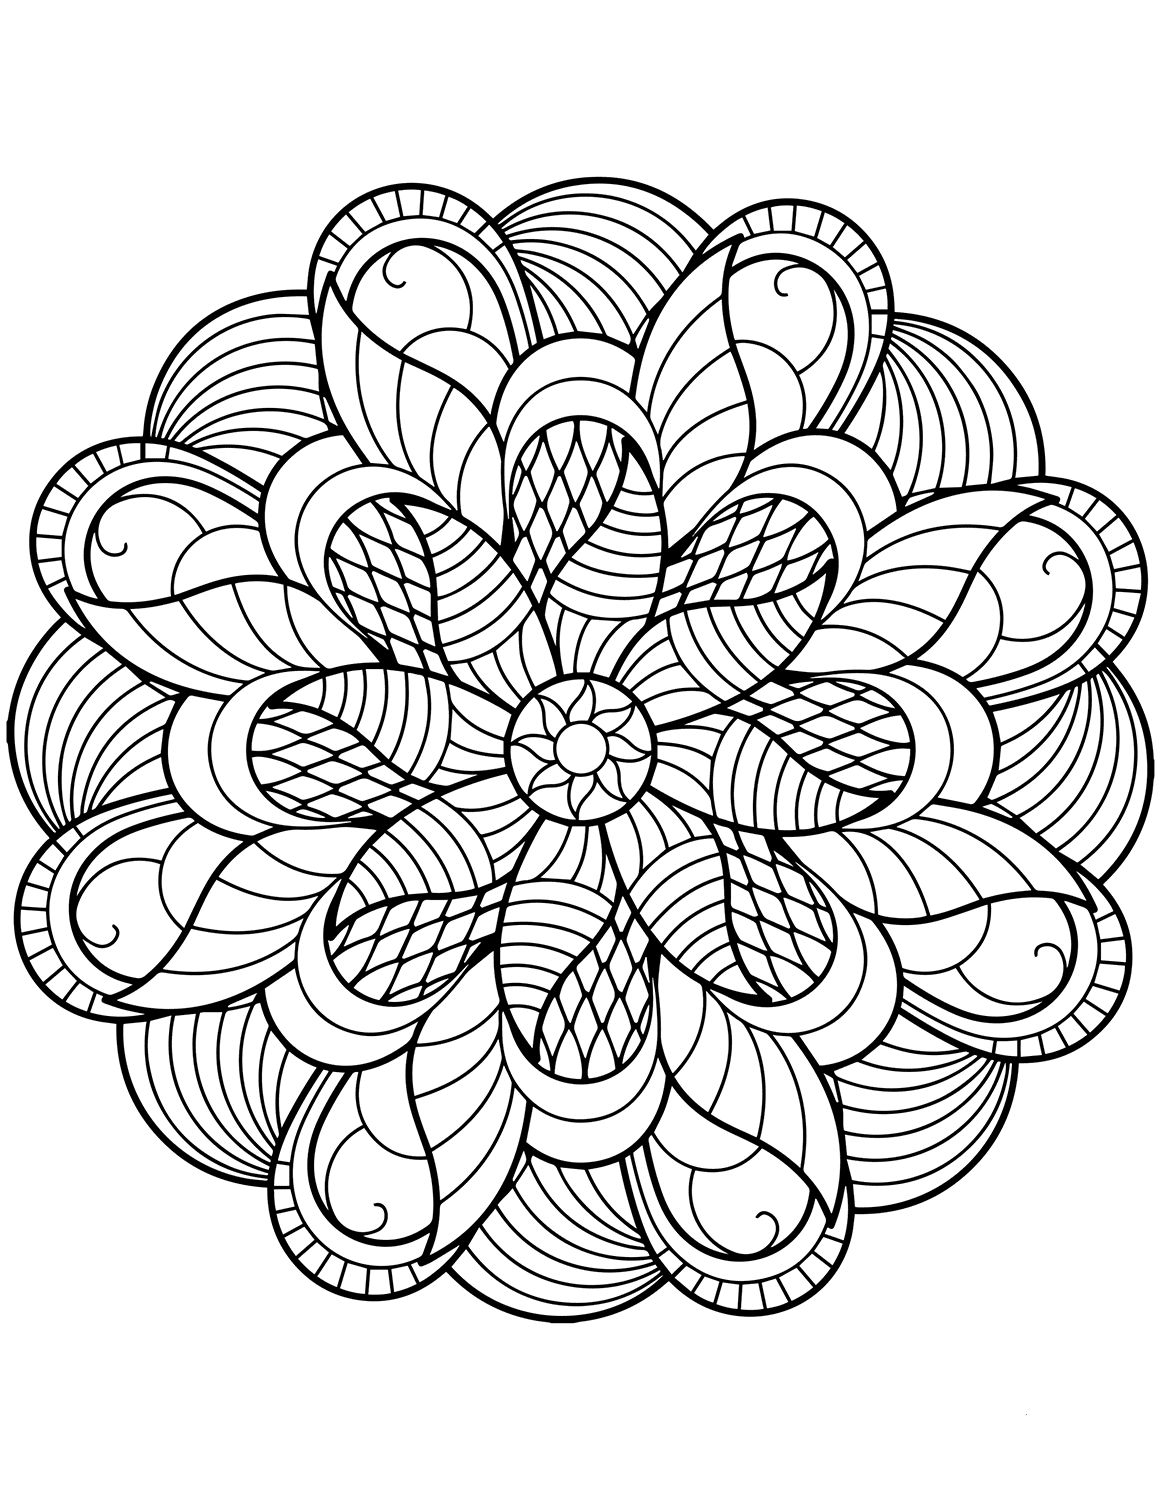 coloring mandala with color don39t eat the paste hidden heart mandala to color mandala with coloring color